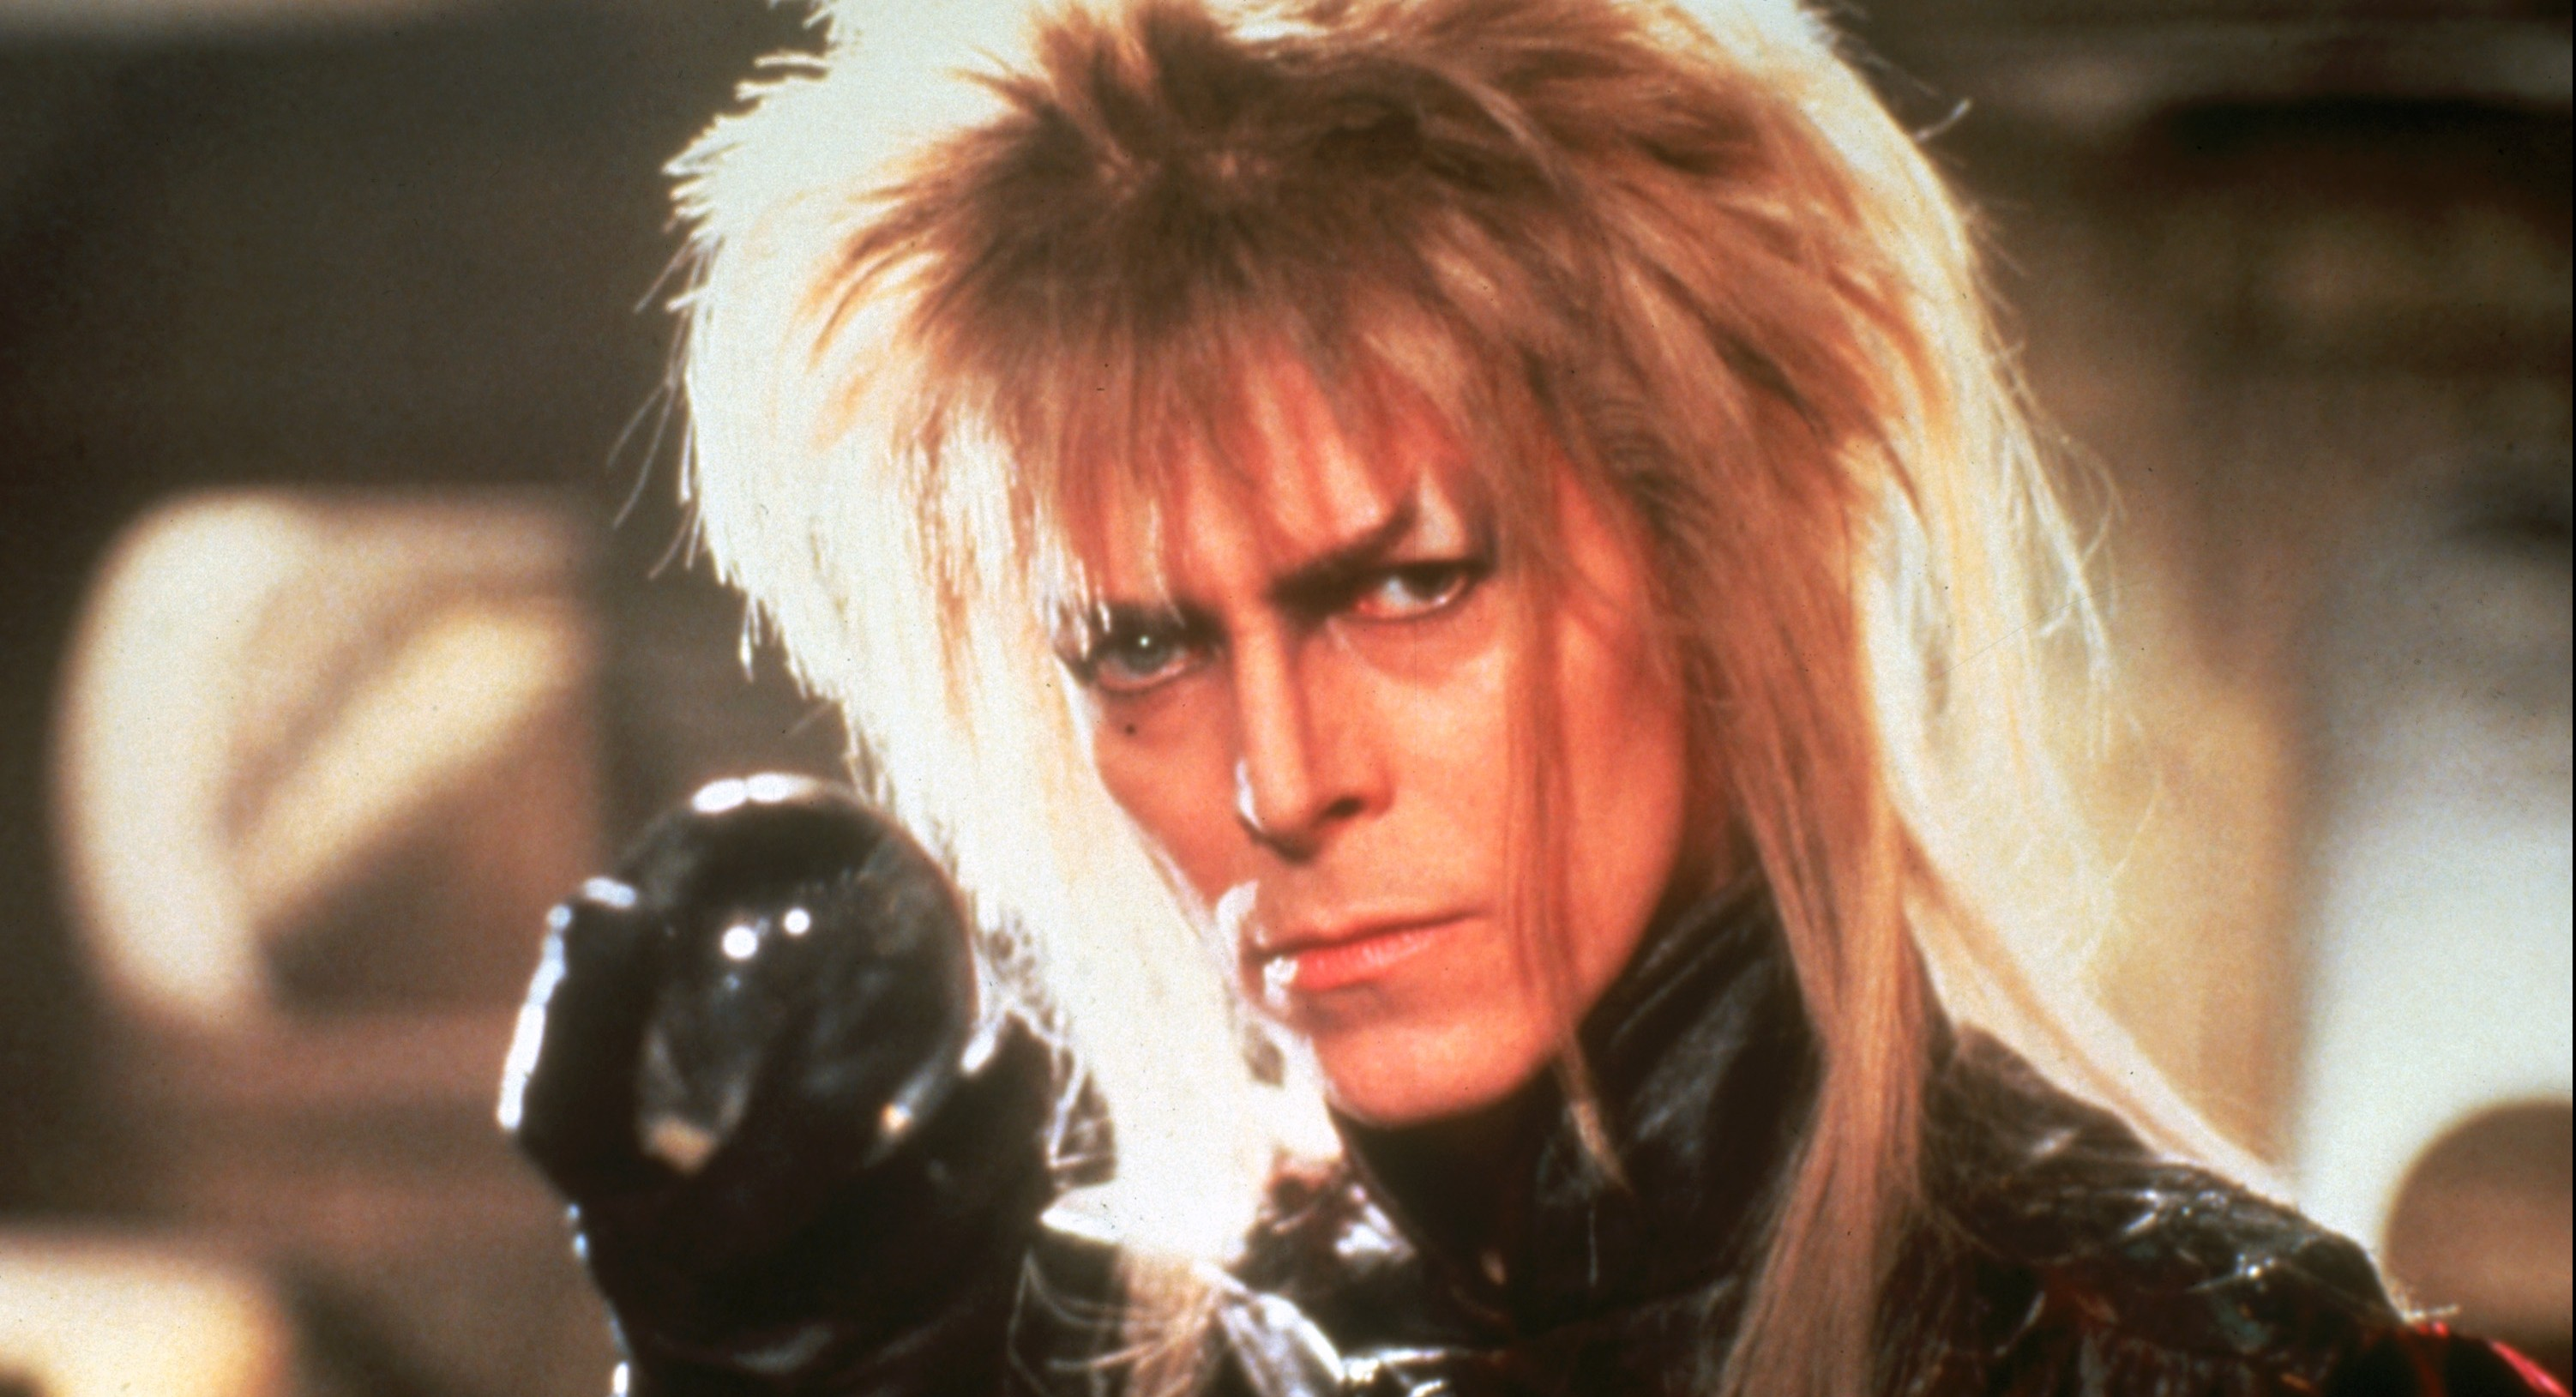 Davie Bowie as 'Jareth, The Goblin King' in LABYRINTH (1986). Lucasfilm / Tristar Pictures